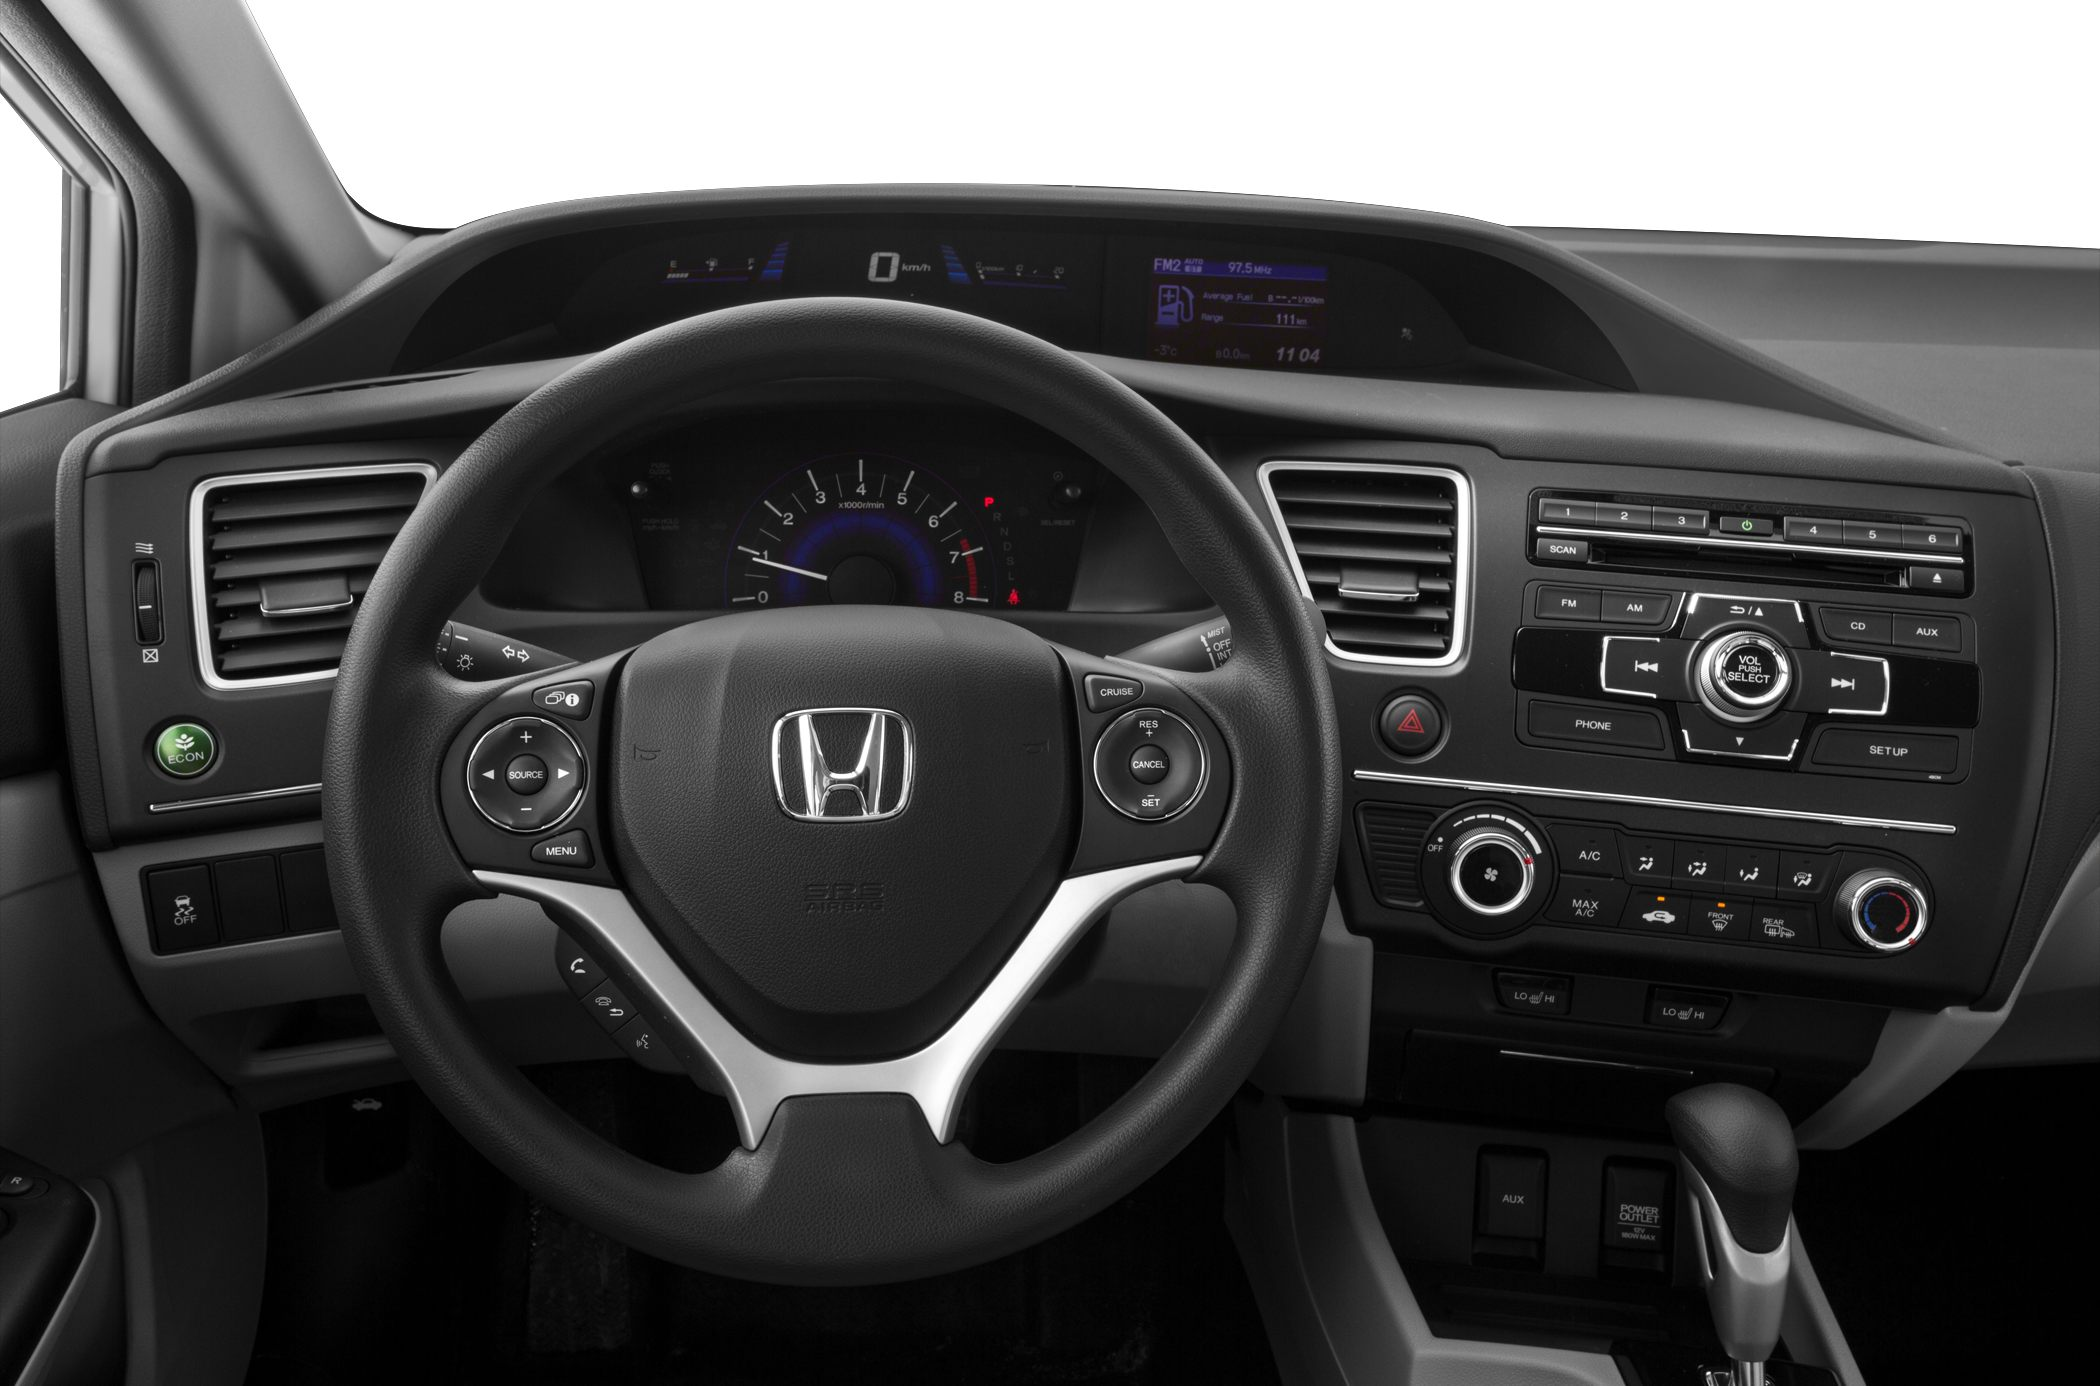 New 2015 Honda Civic - Price, Photos, Reviews, Safety Ratings